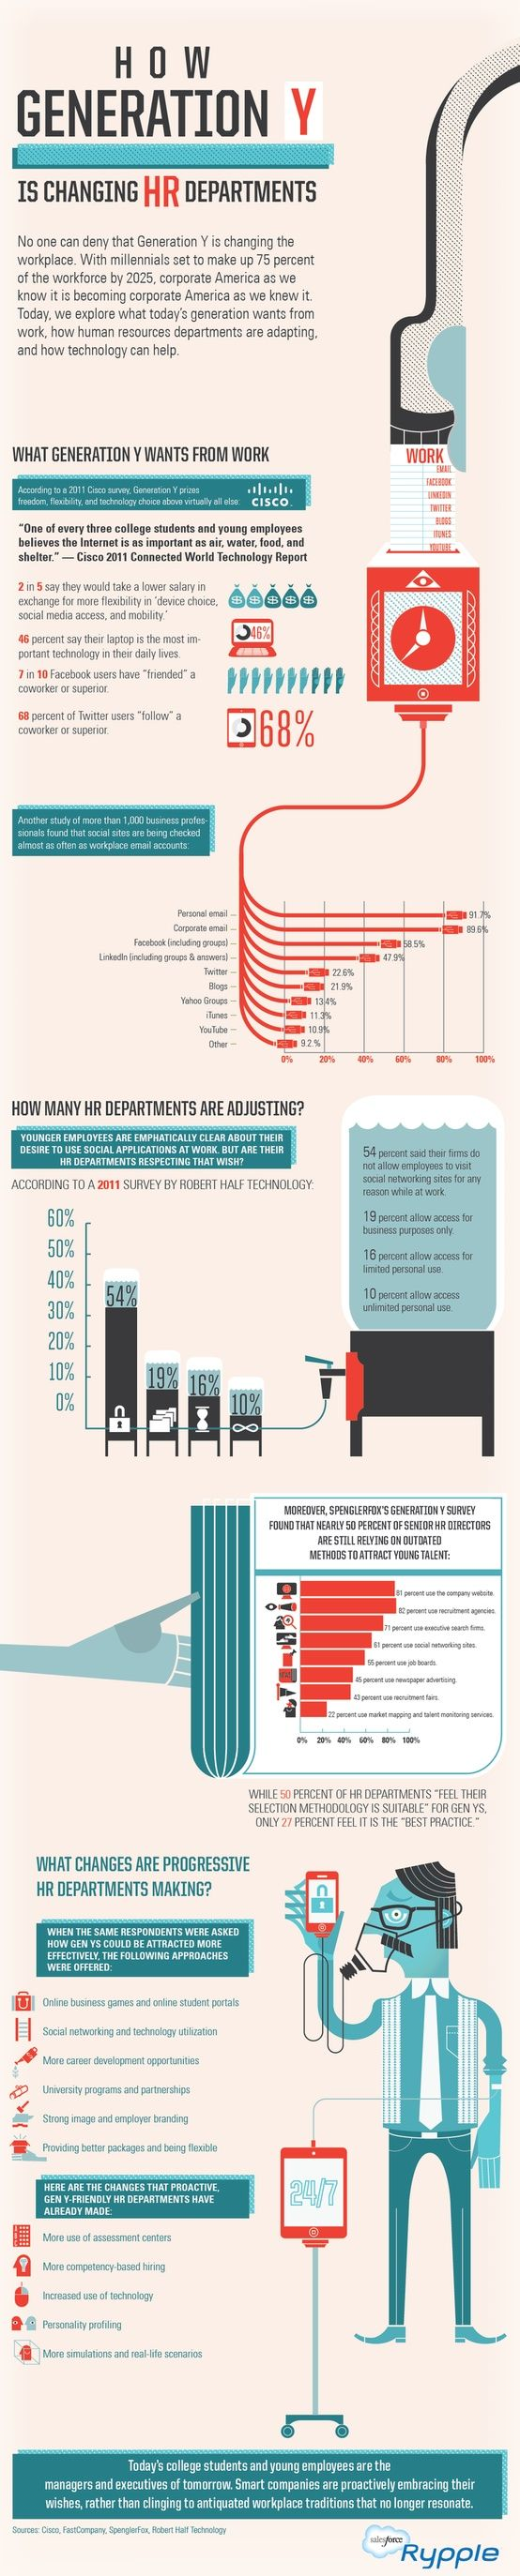 How Generation Y is changing HR departments